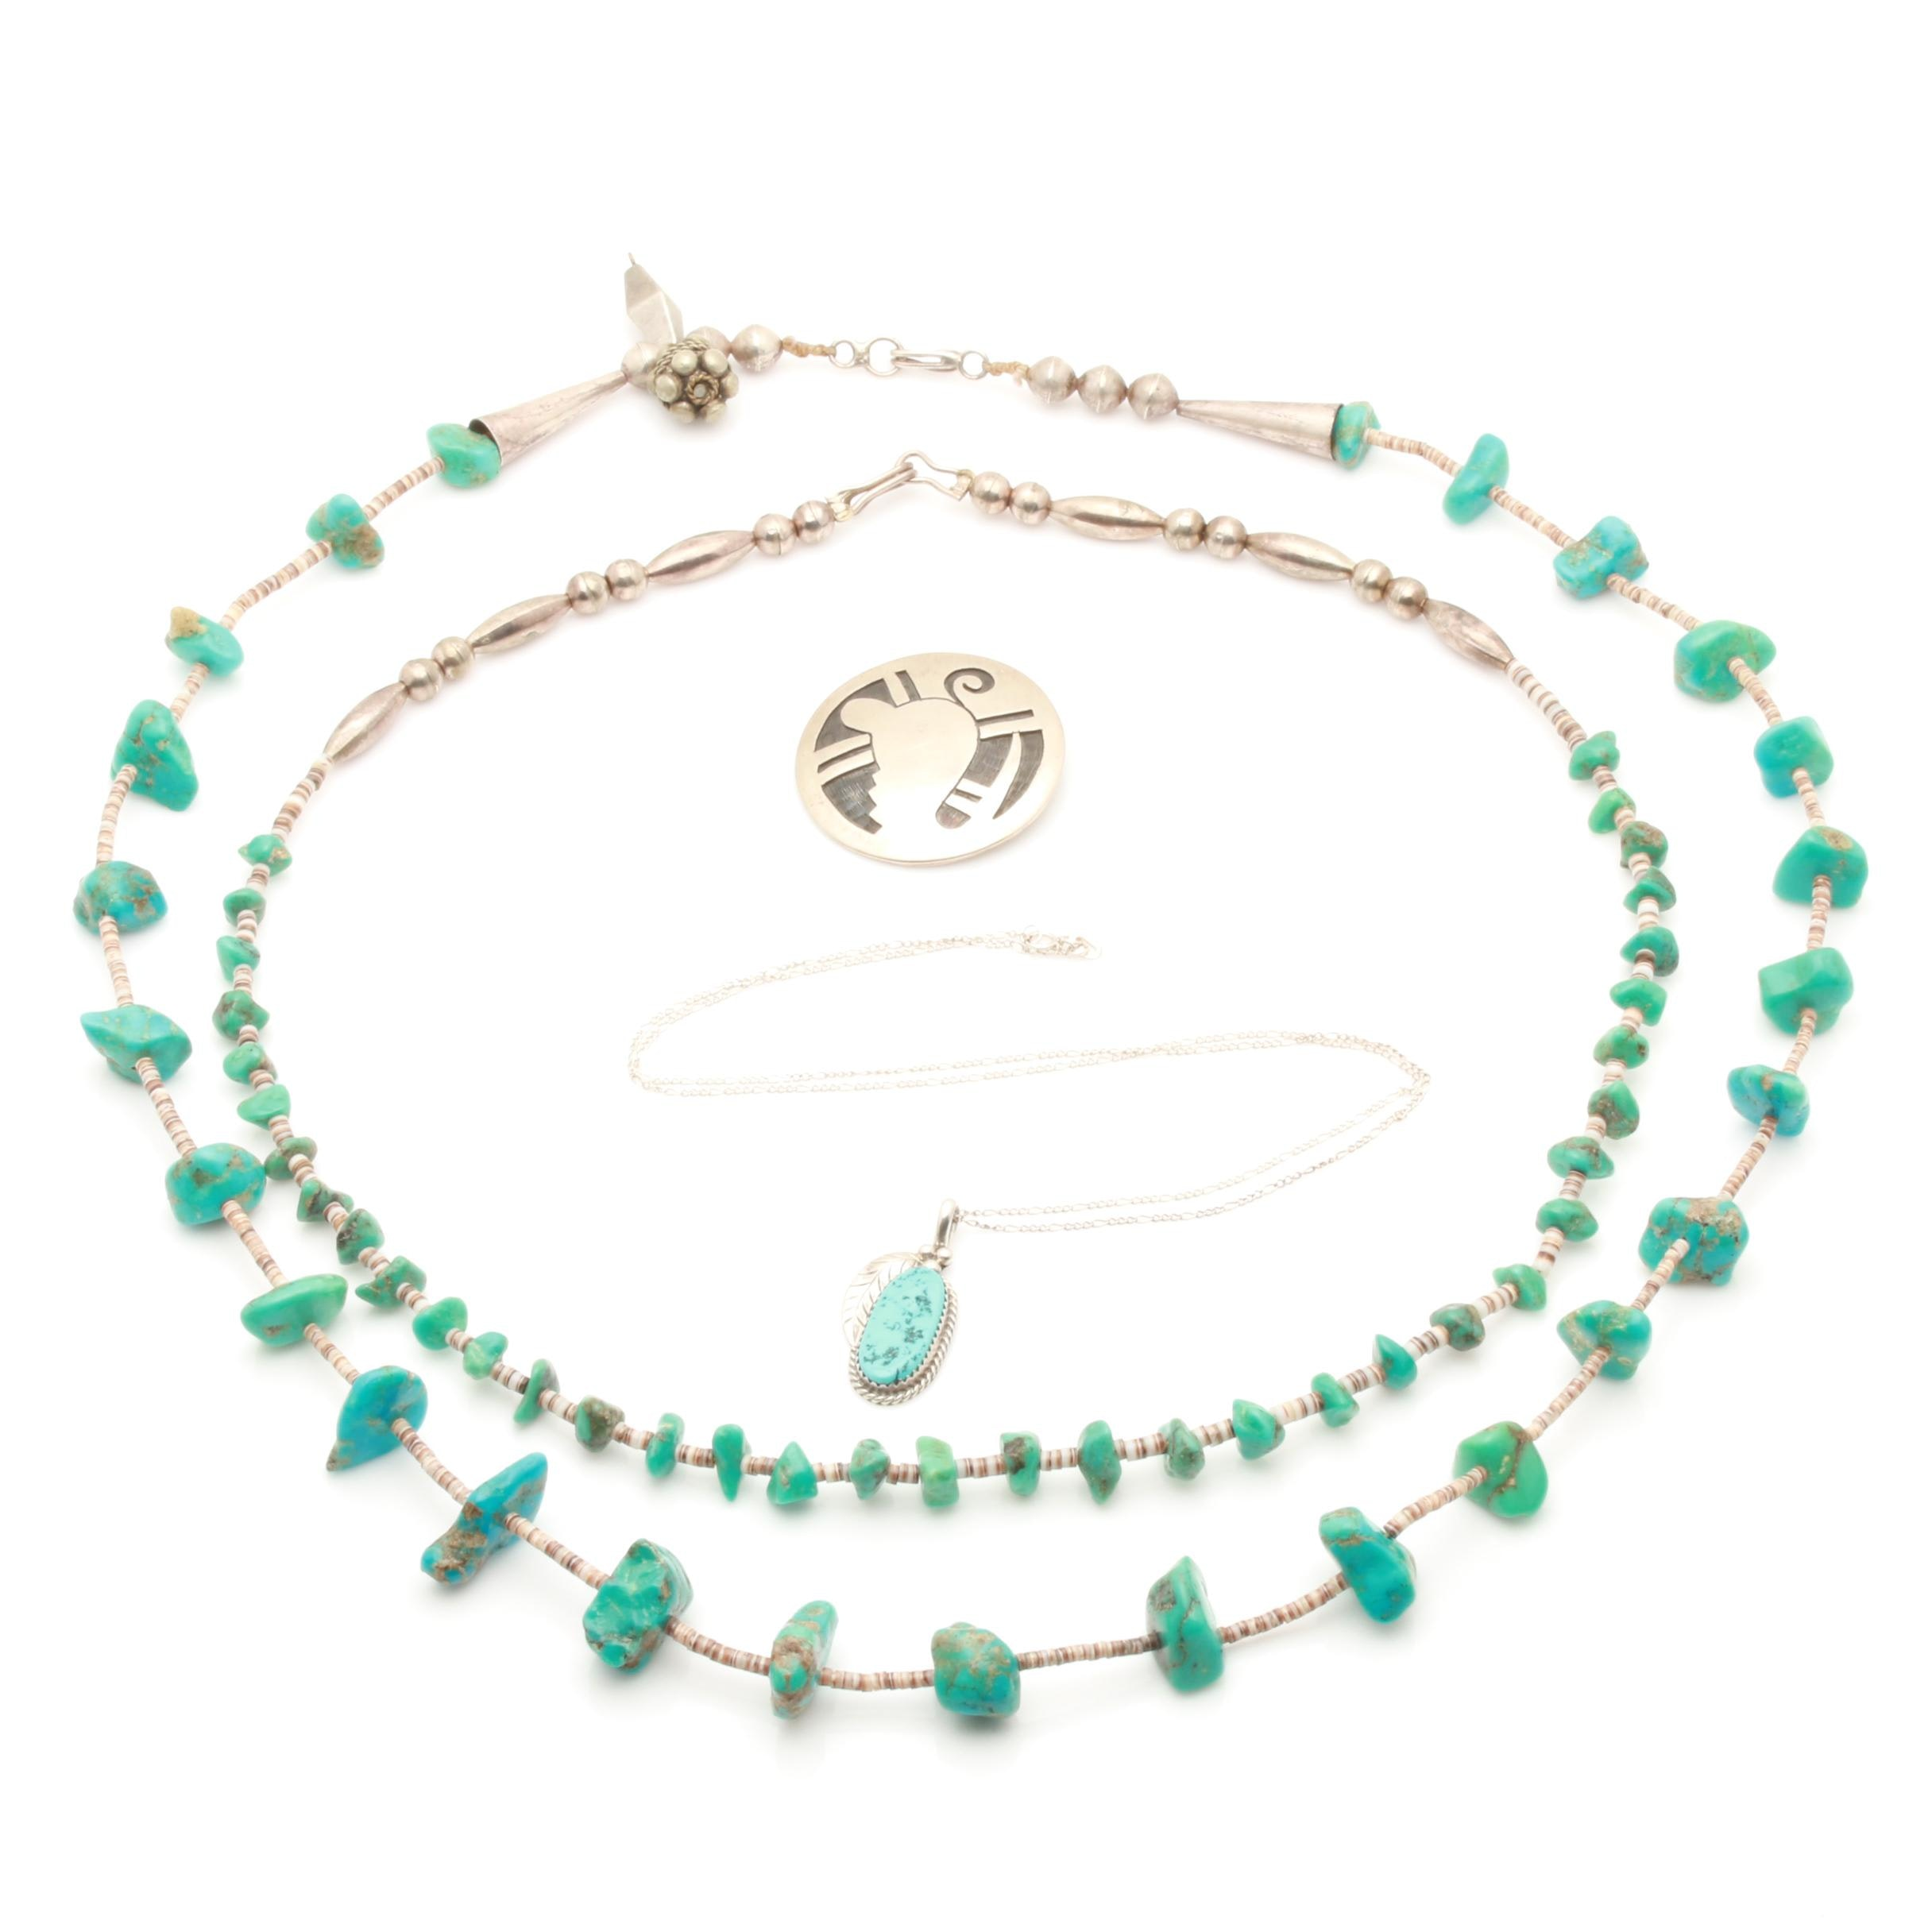 Assortment of Sterling Silver Turquoise Brooch, Pendant and Beaded Necklaces